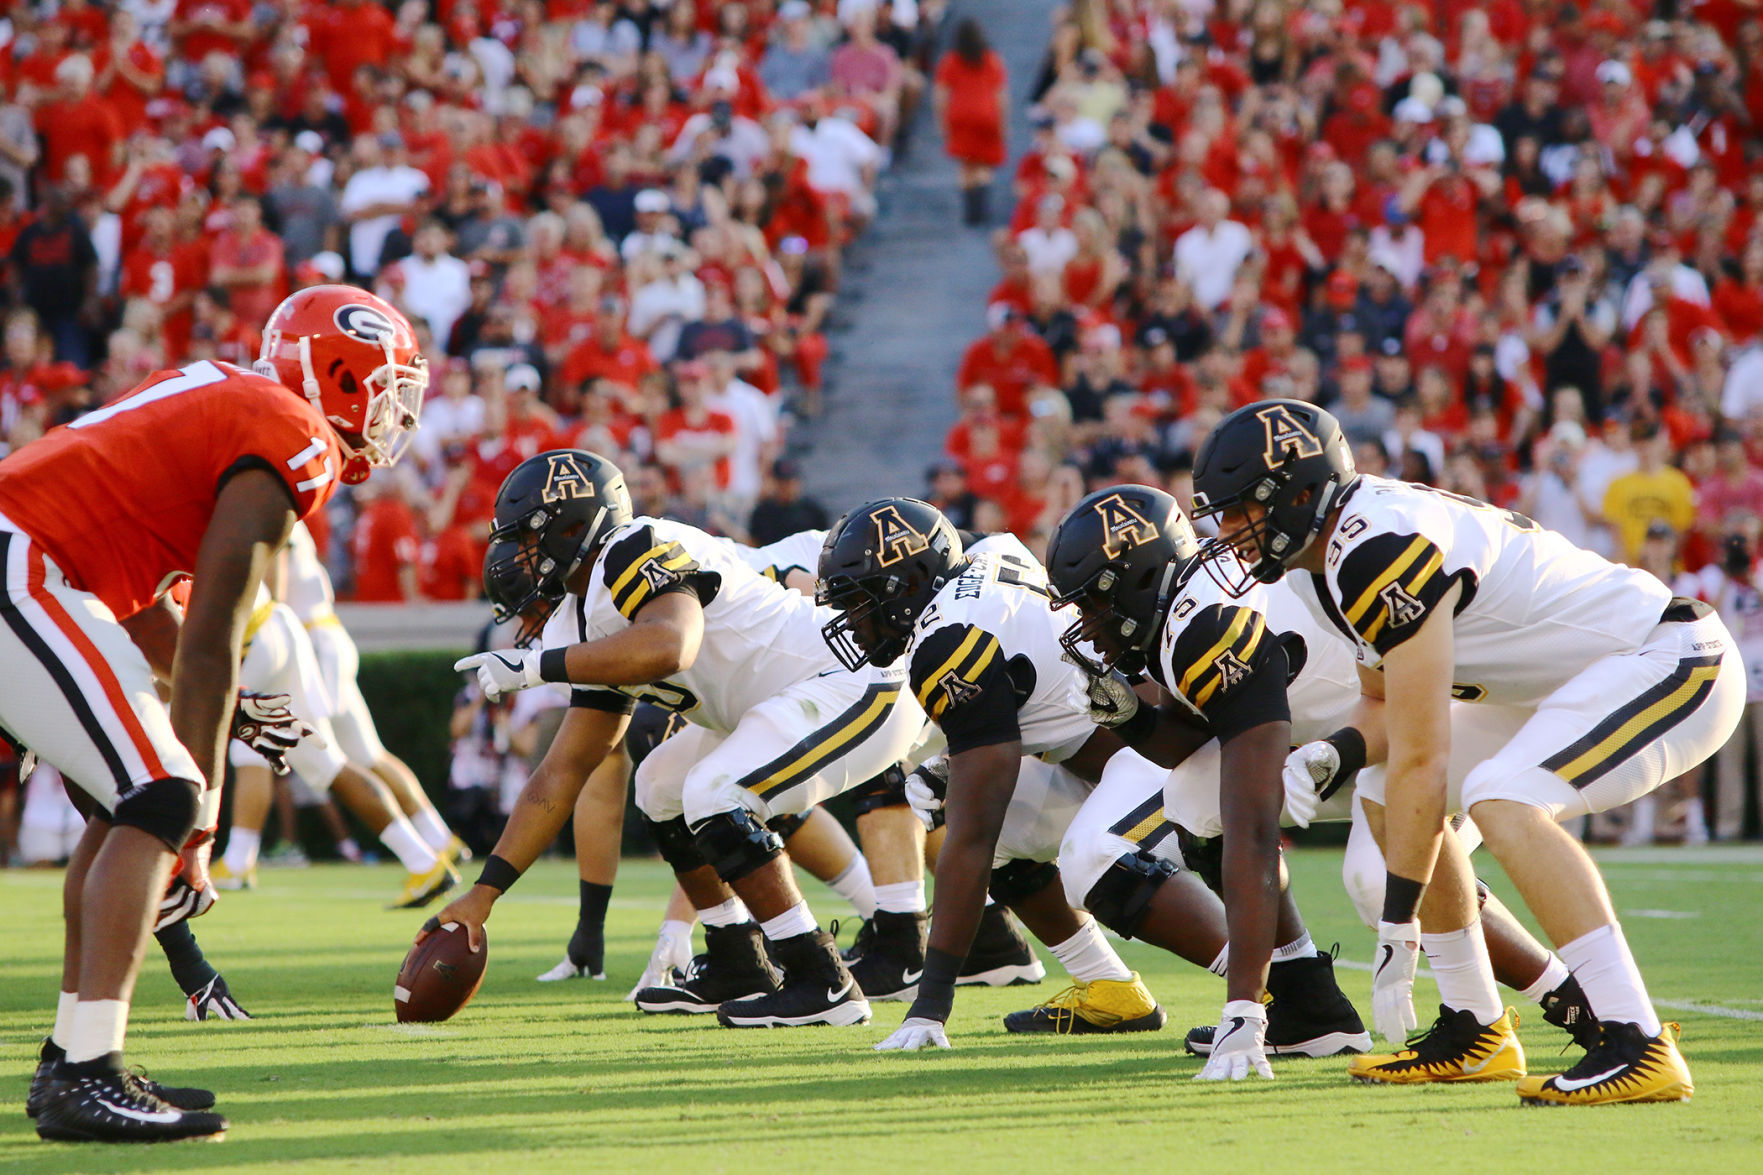 App State Wake Forest Football Game To Start At 3 30 P M Asu